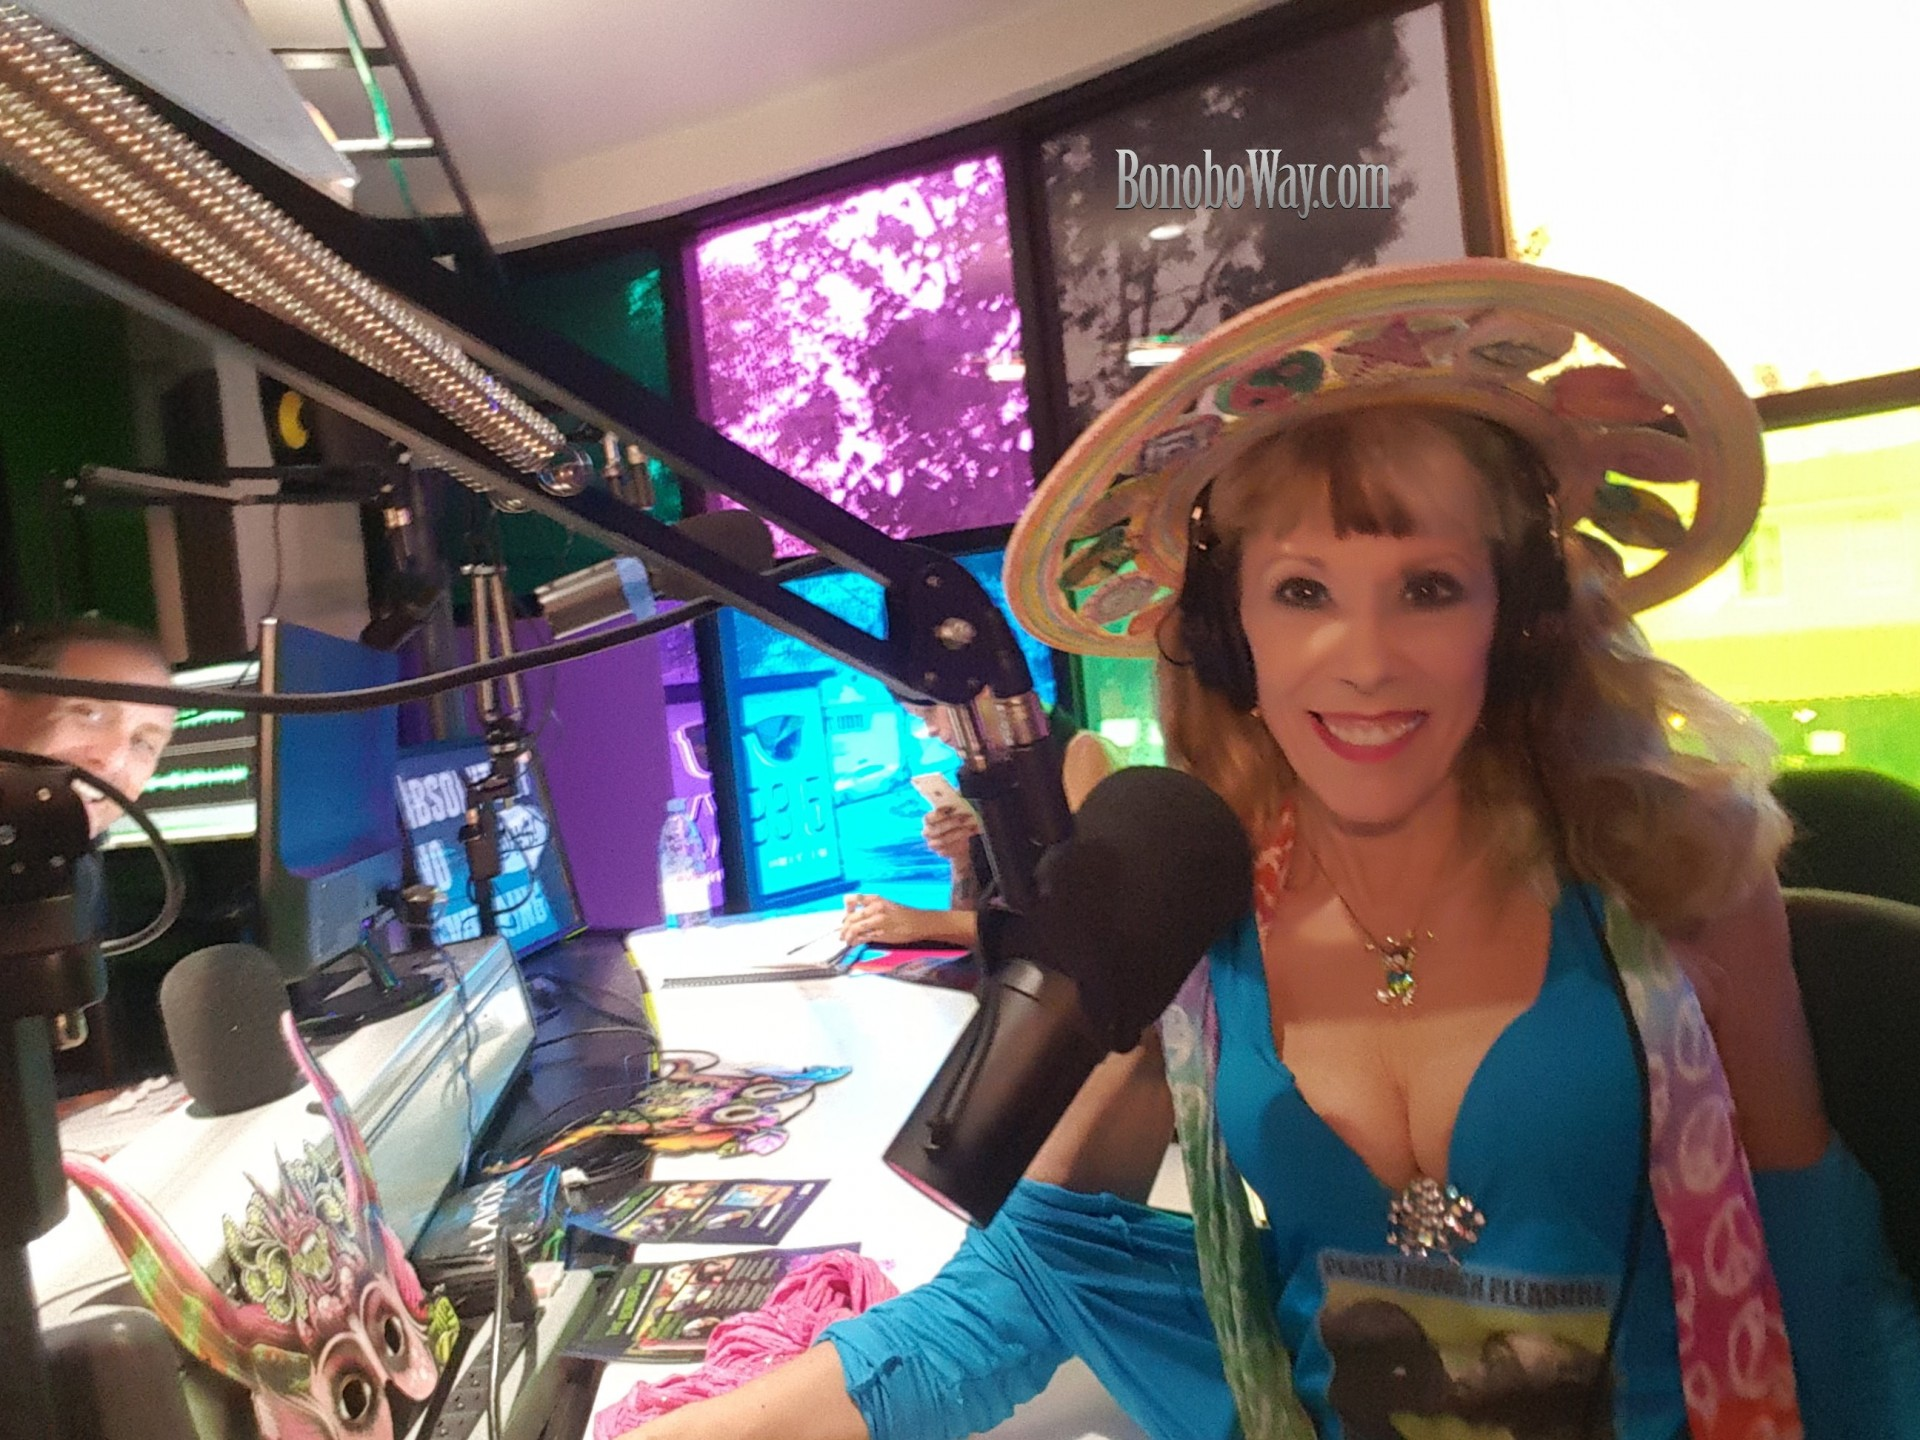 On my trippy terrific Inner Journey with Greg Friedman on KX 93.5 FM, Laguna Beach.